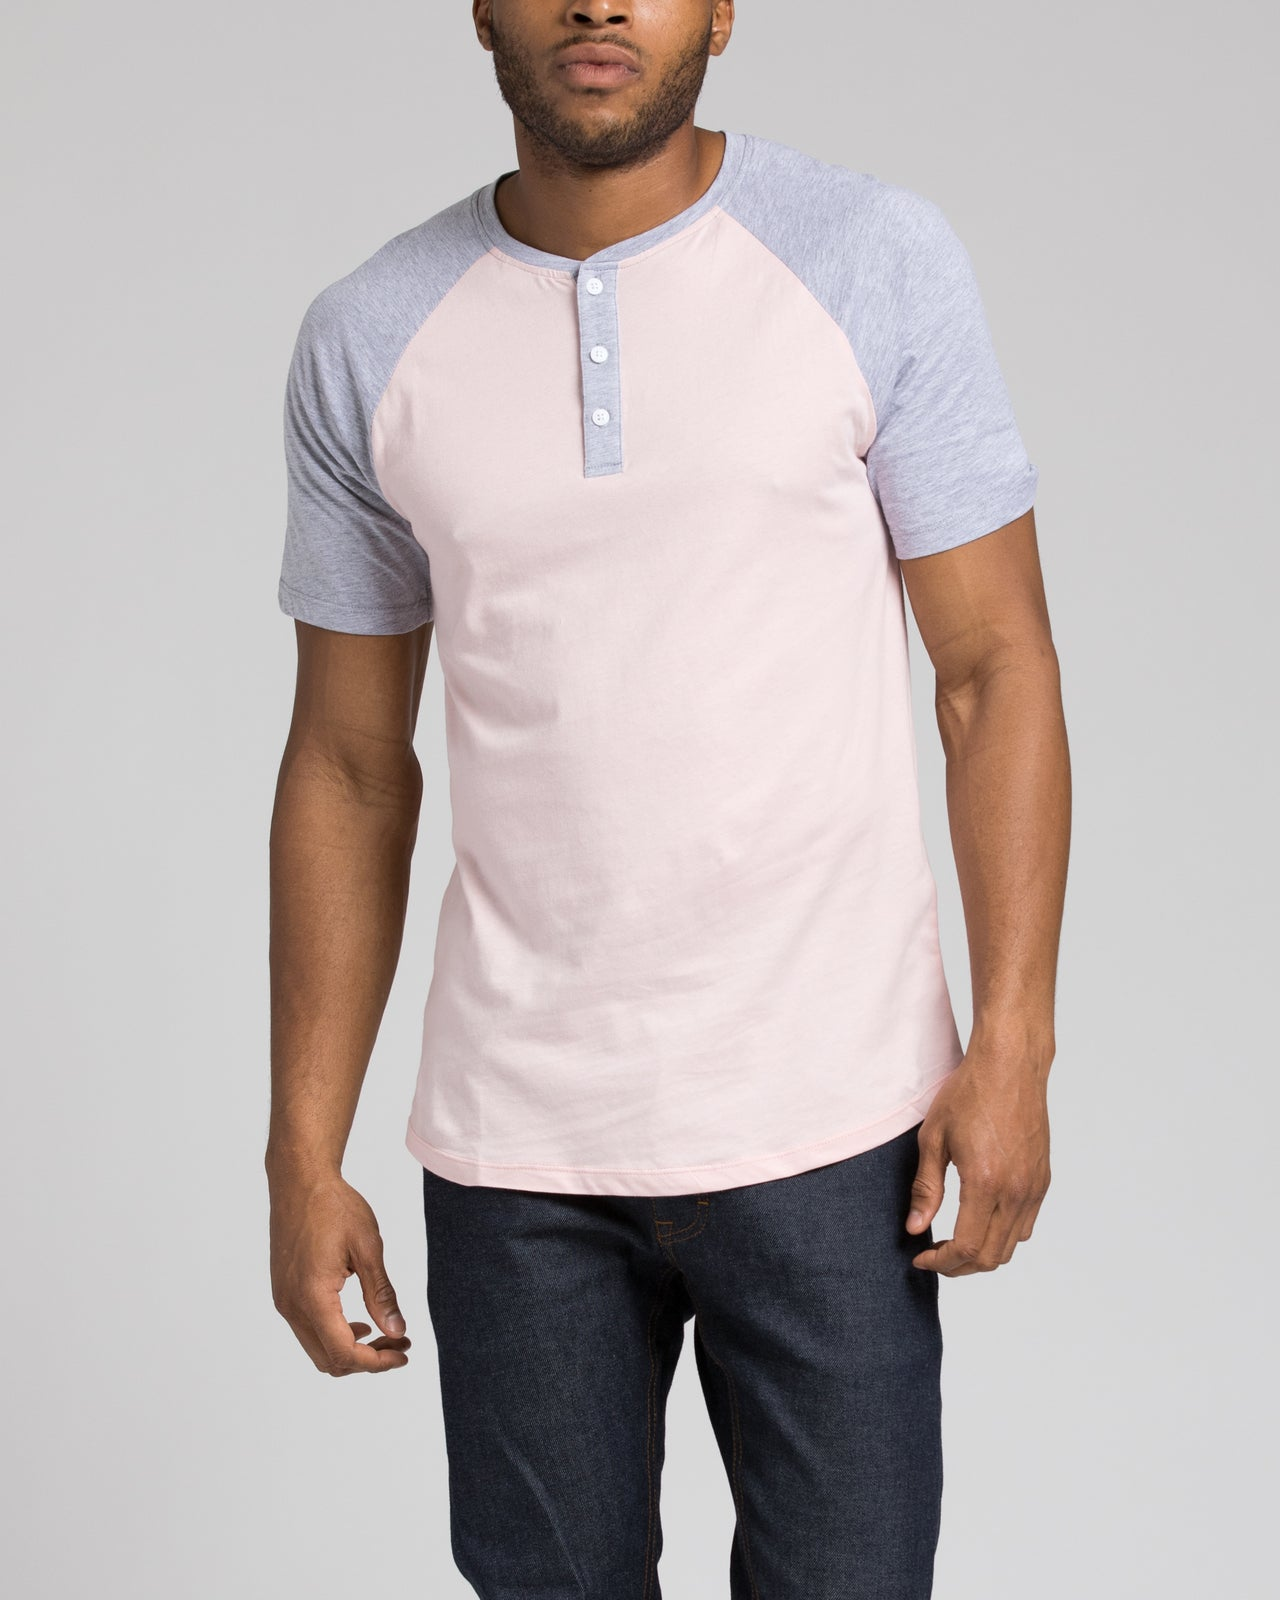 Short Sleeve Henley - Color: Heather Grey/Pink | Pink